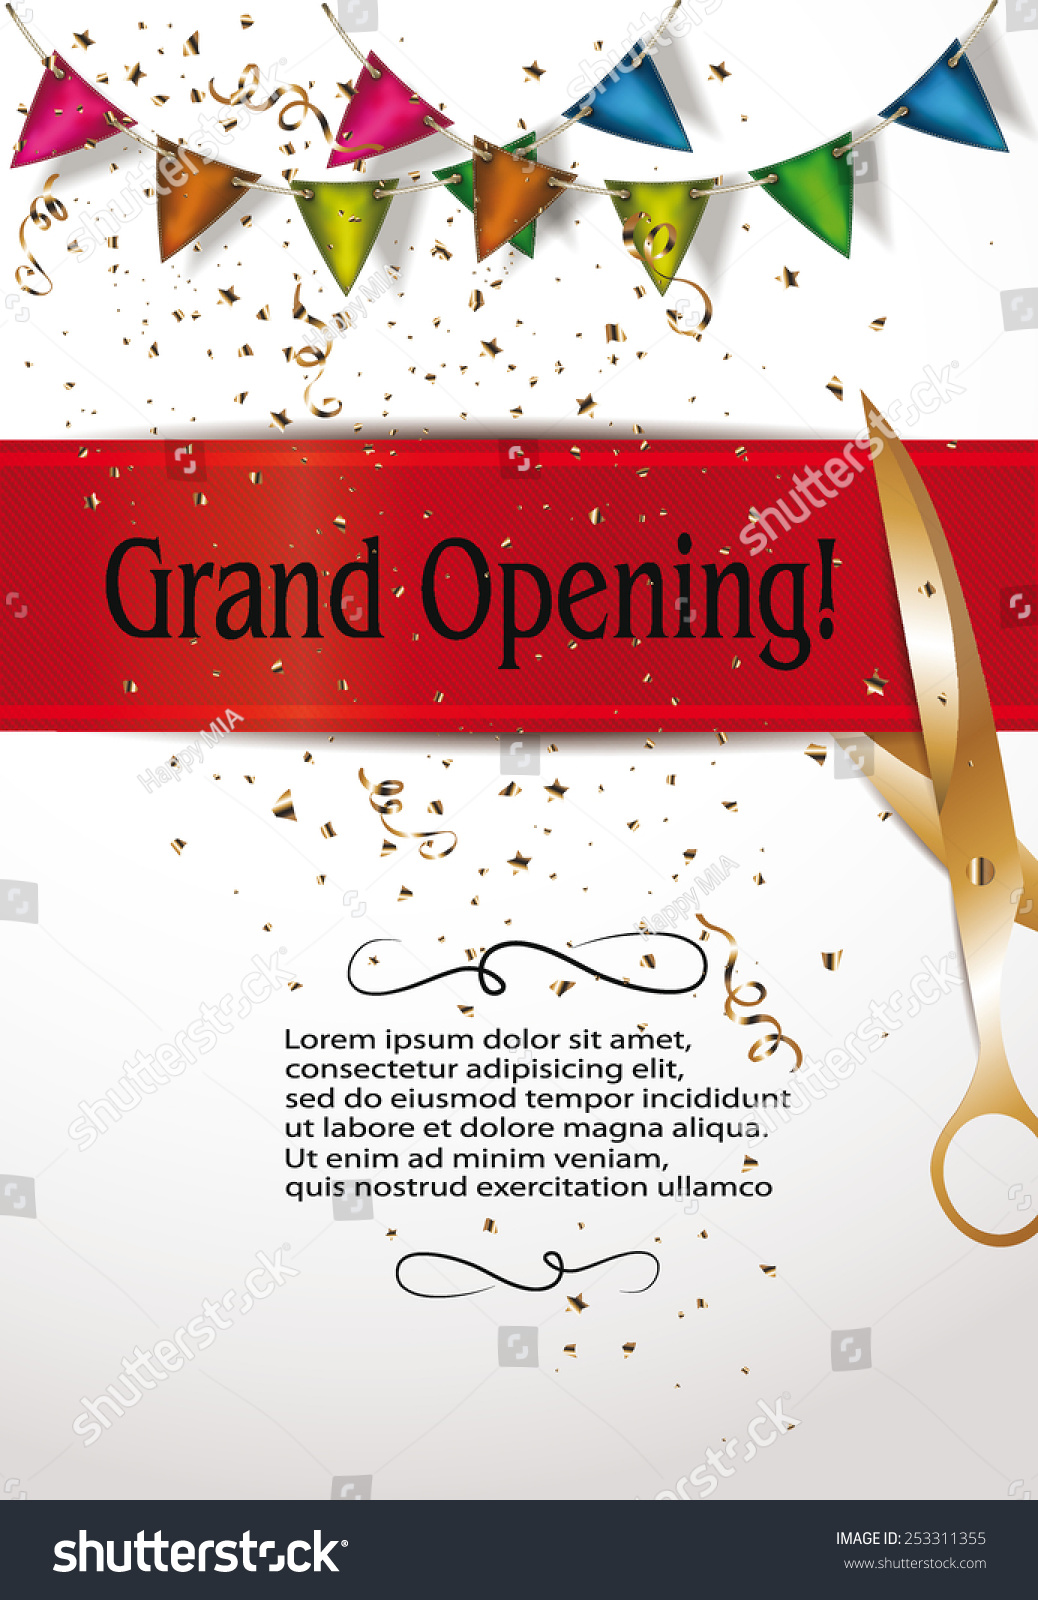 grand opening invitation cards decorations red stock vector 253311355 shutterstock. Black Bedroom Furniture Sets. Home Design Ideas